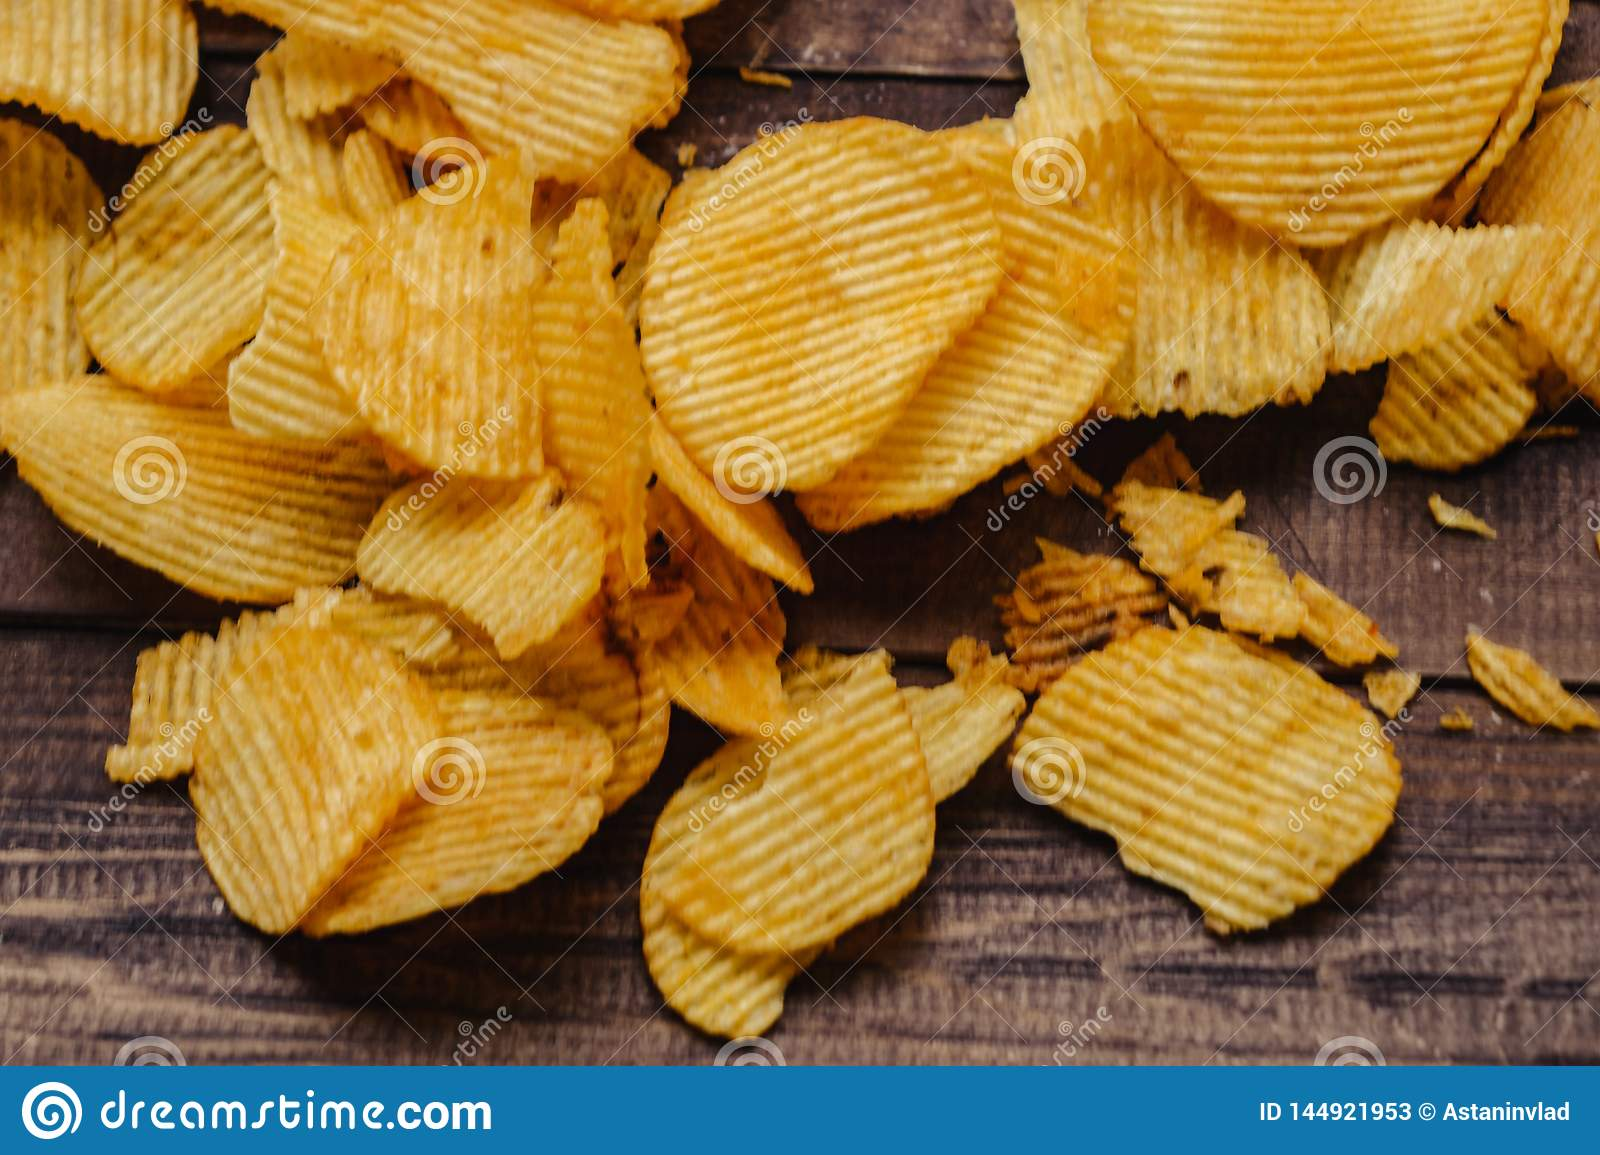 crispy potato chips on wooden background. chips started